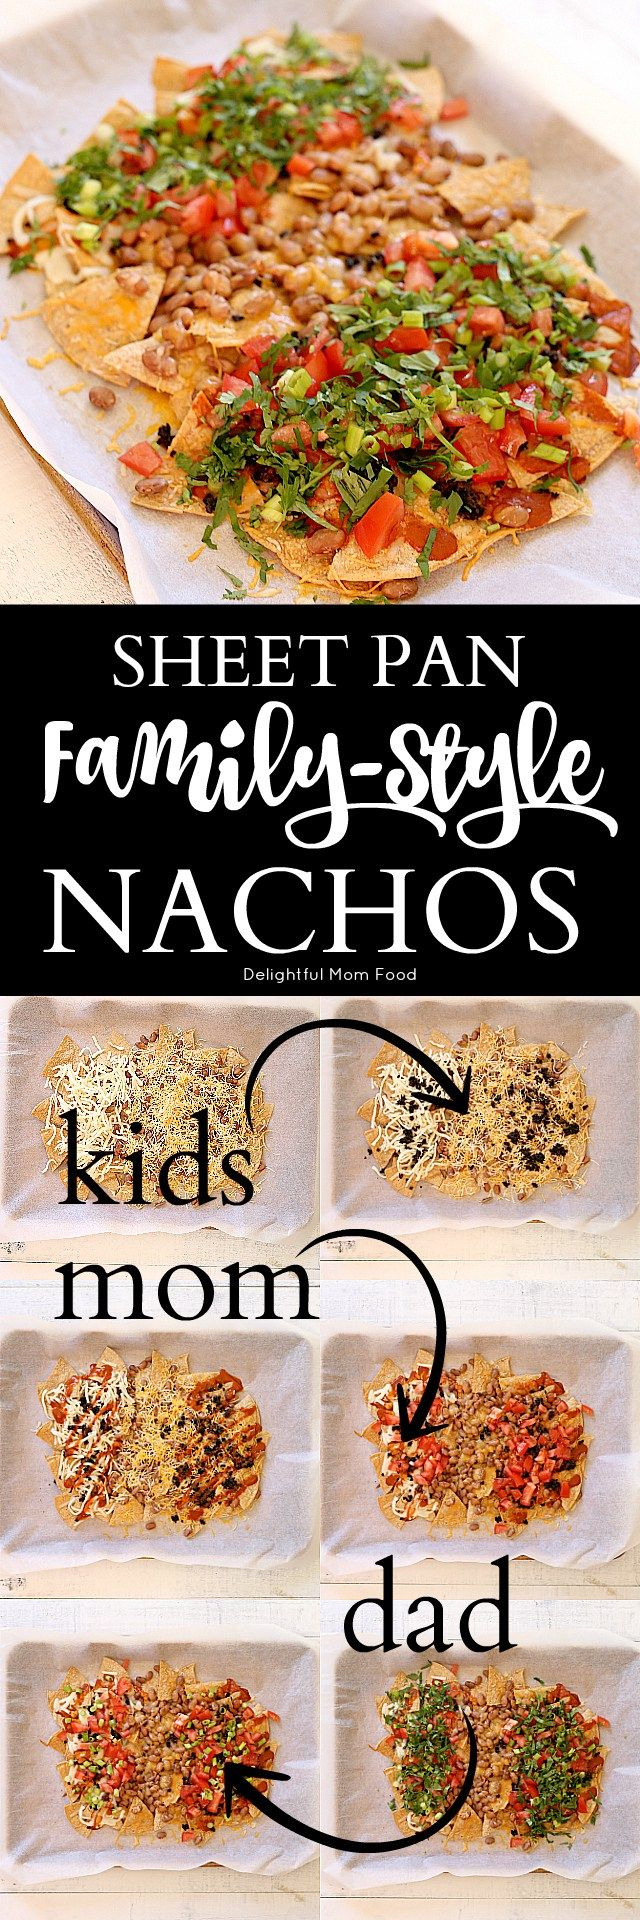 Simple nachos recipe custom created for each member of the family and baked to perfection on a sheet pan! Forget about the kids not wanting veggies on top and the husband wants his enchilada sauce and you want extra cheese. Now you can cater to all members of the family in one of the easiest sheet pan dinner recipes!